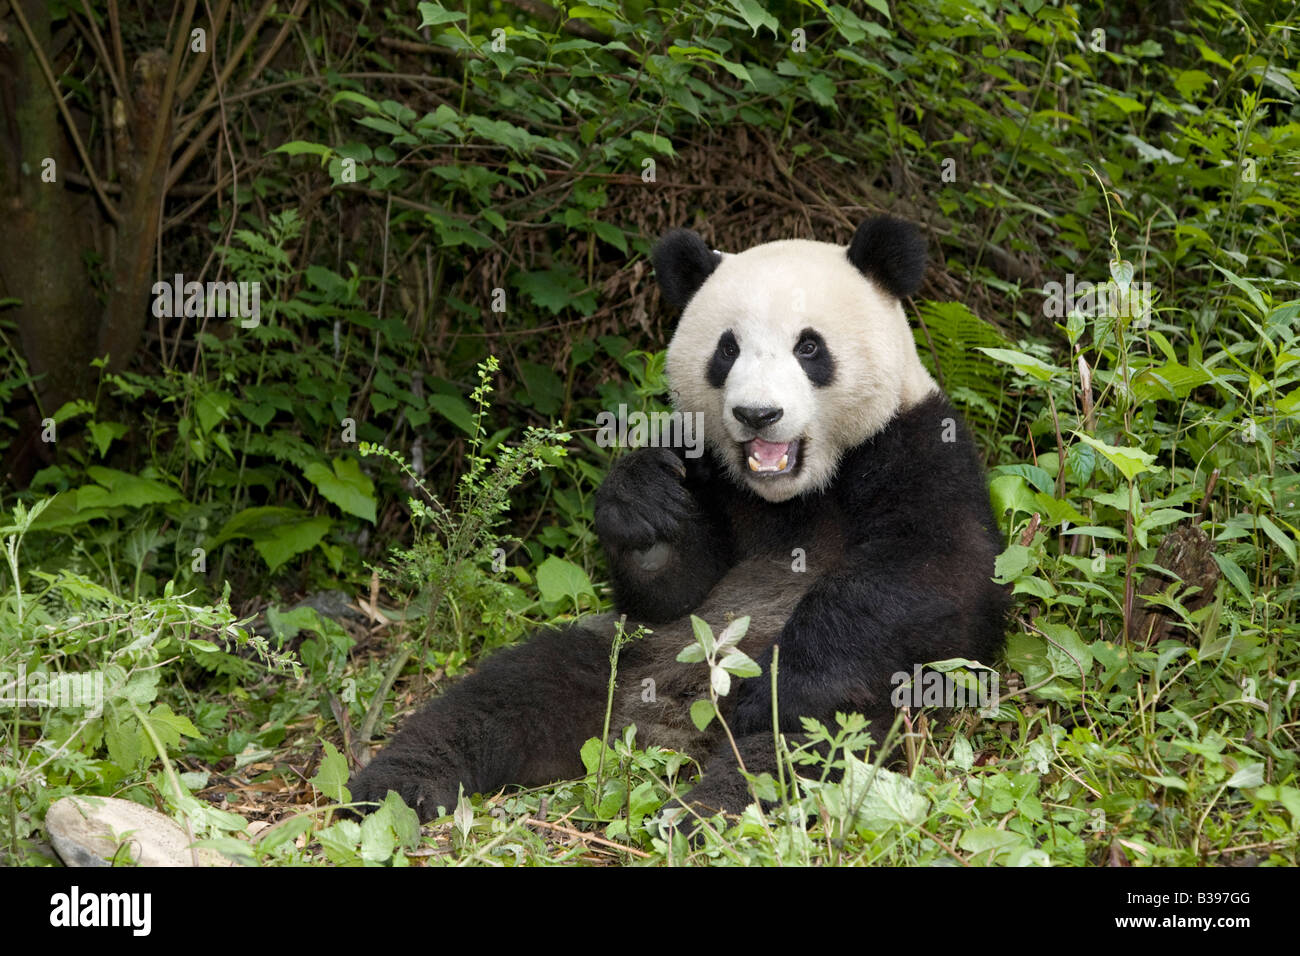 Giant Panda in the forest, Wolong China - Stock Image